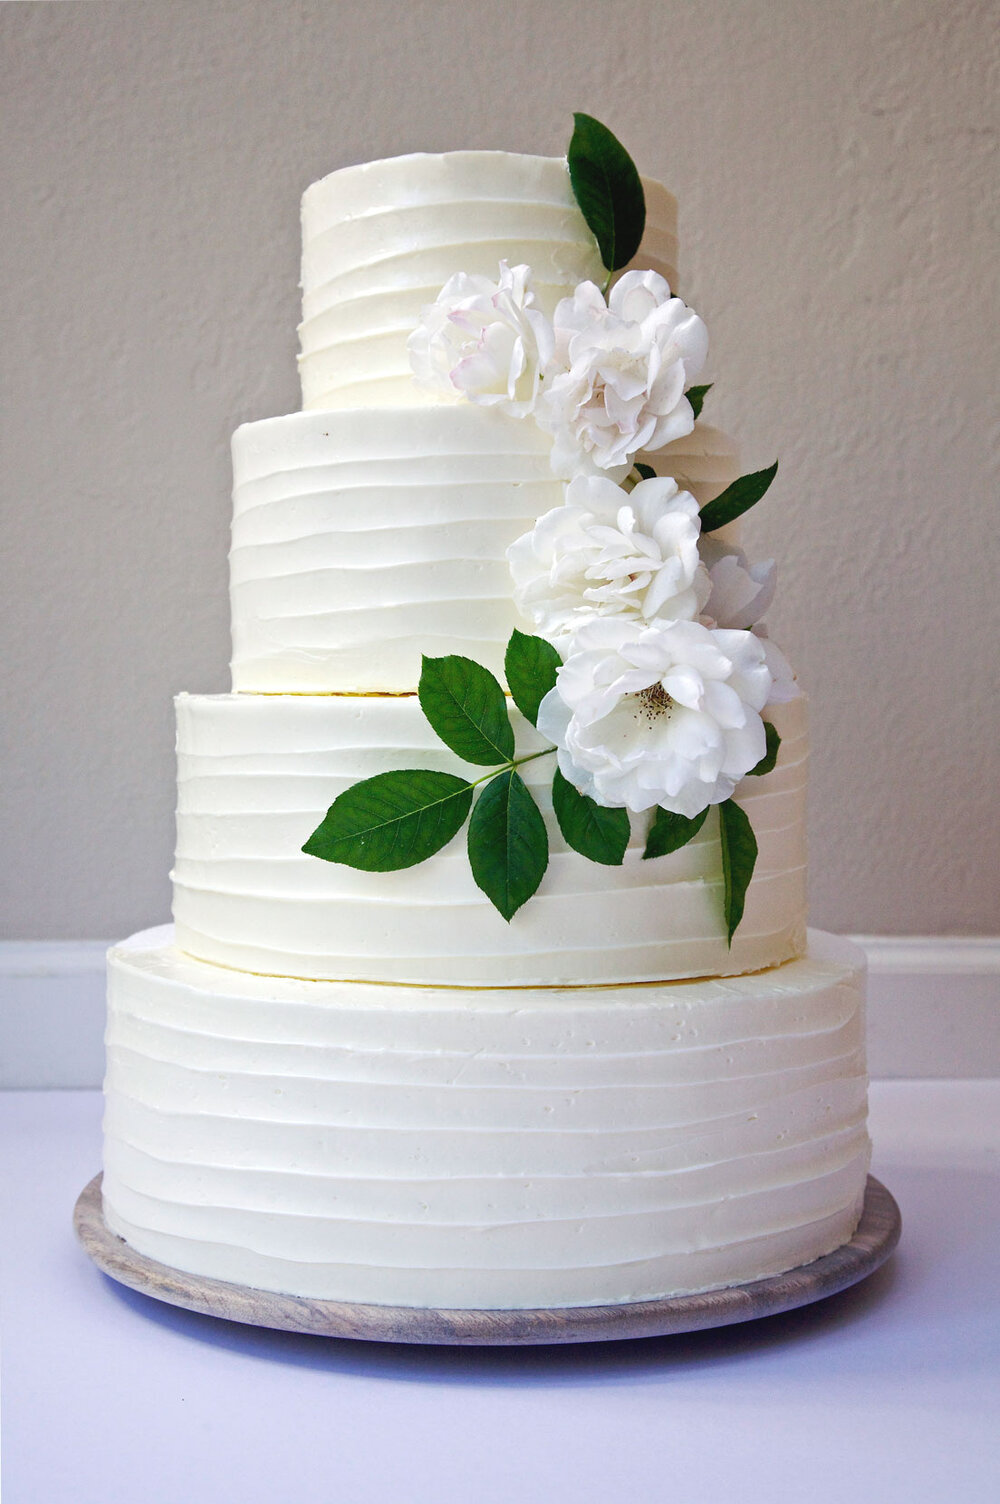 sweet-wedding-cake17.jpg